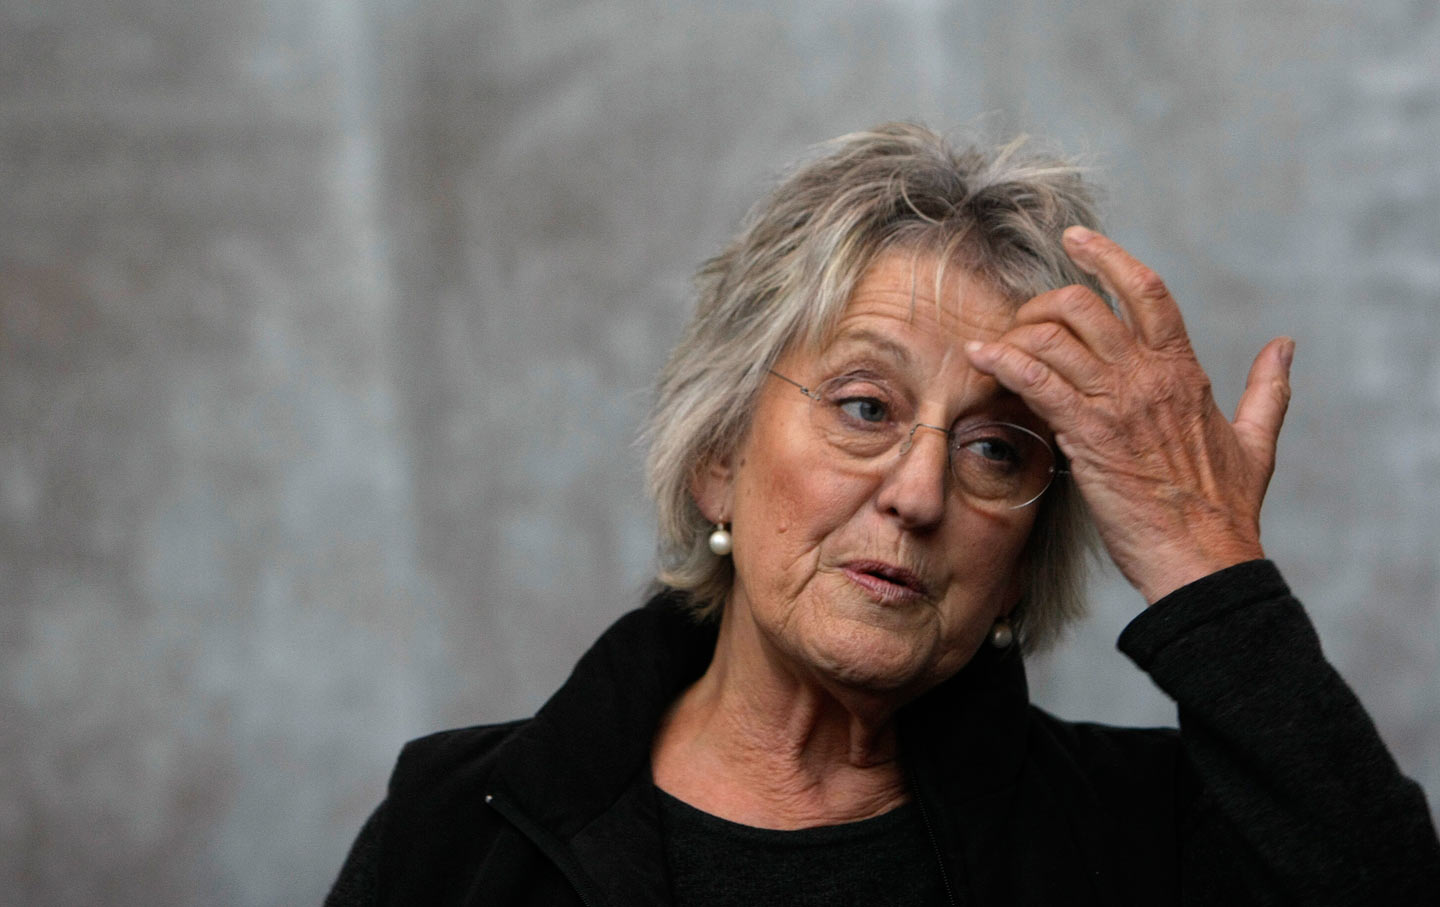 Germaine Greer speaks at the Melbourne Writers Festival.